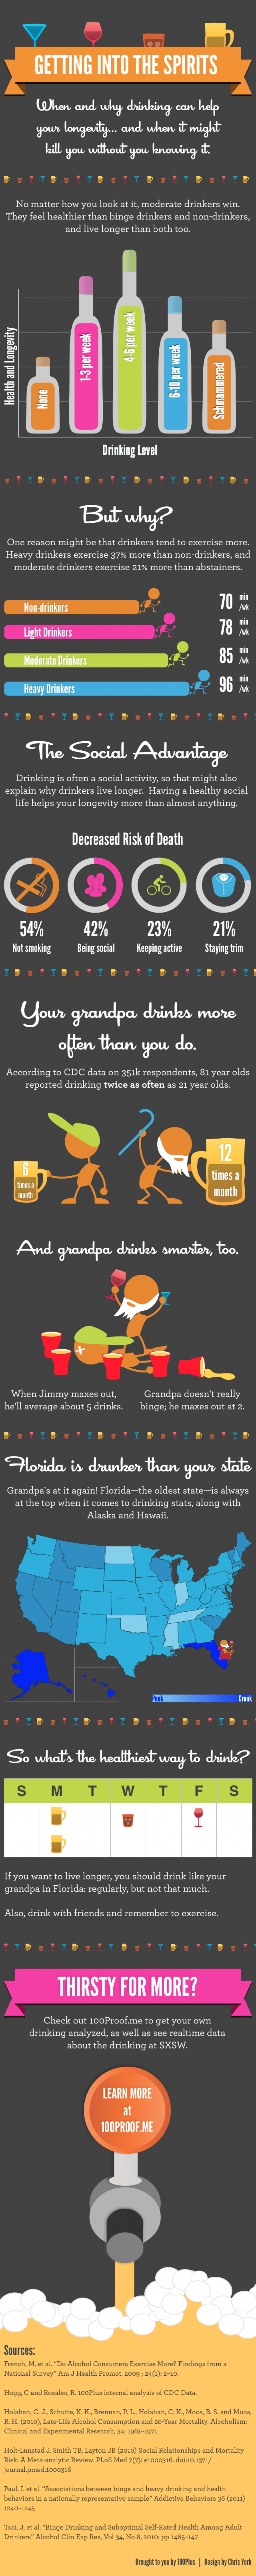 Getting Into the Spirits: Strange Facts About Drinking Infographic